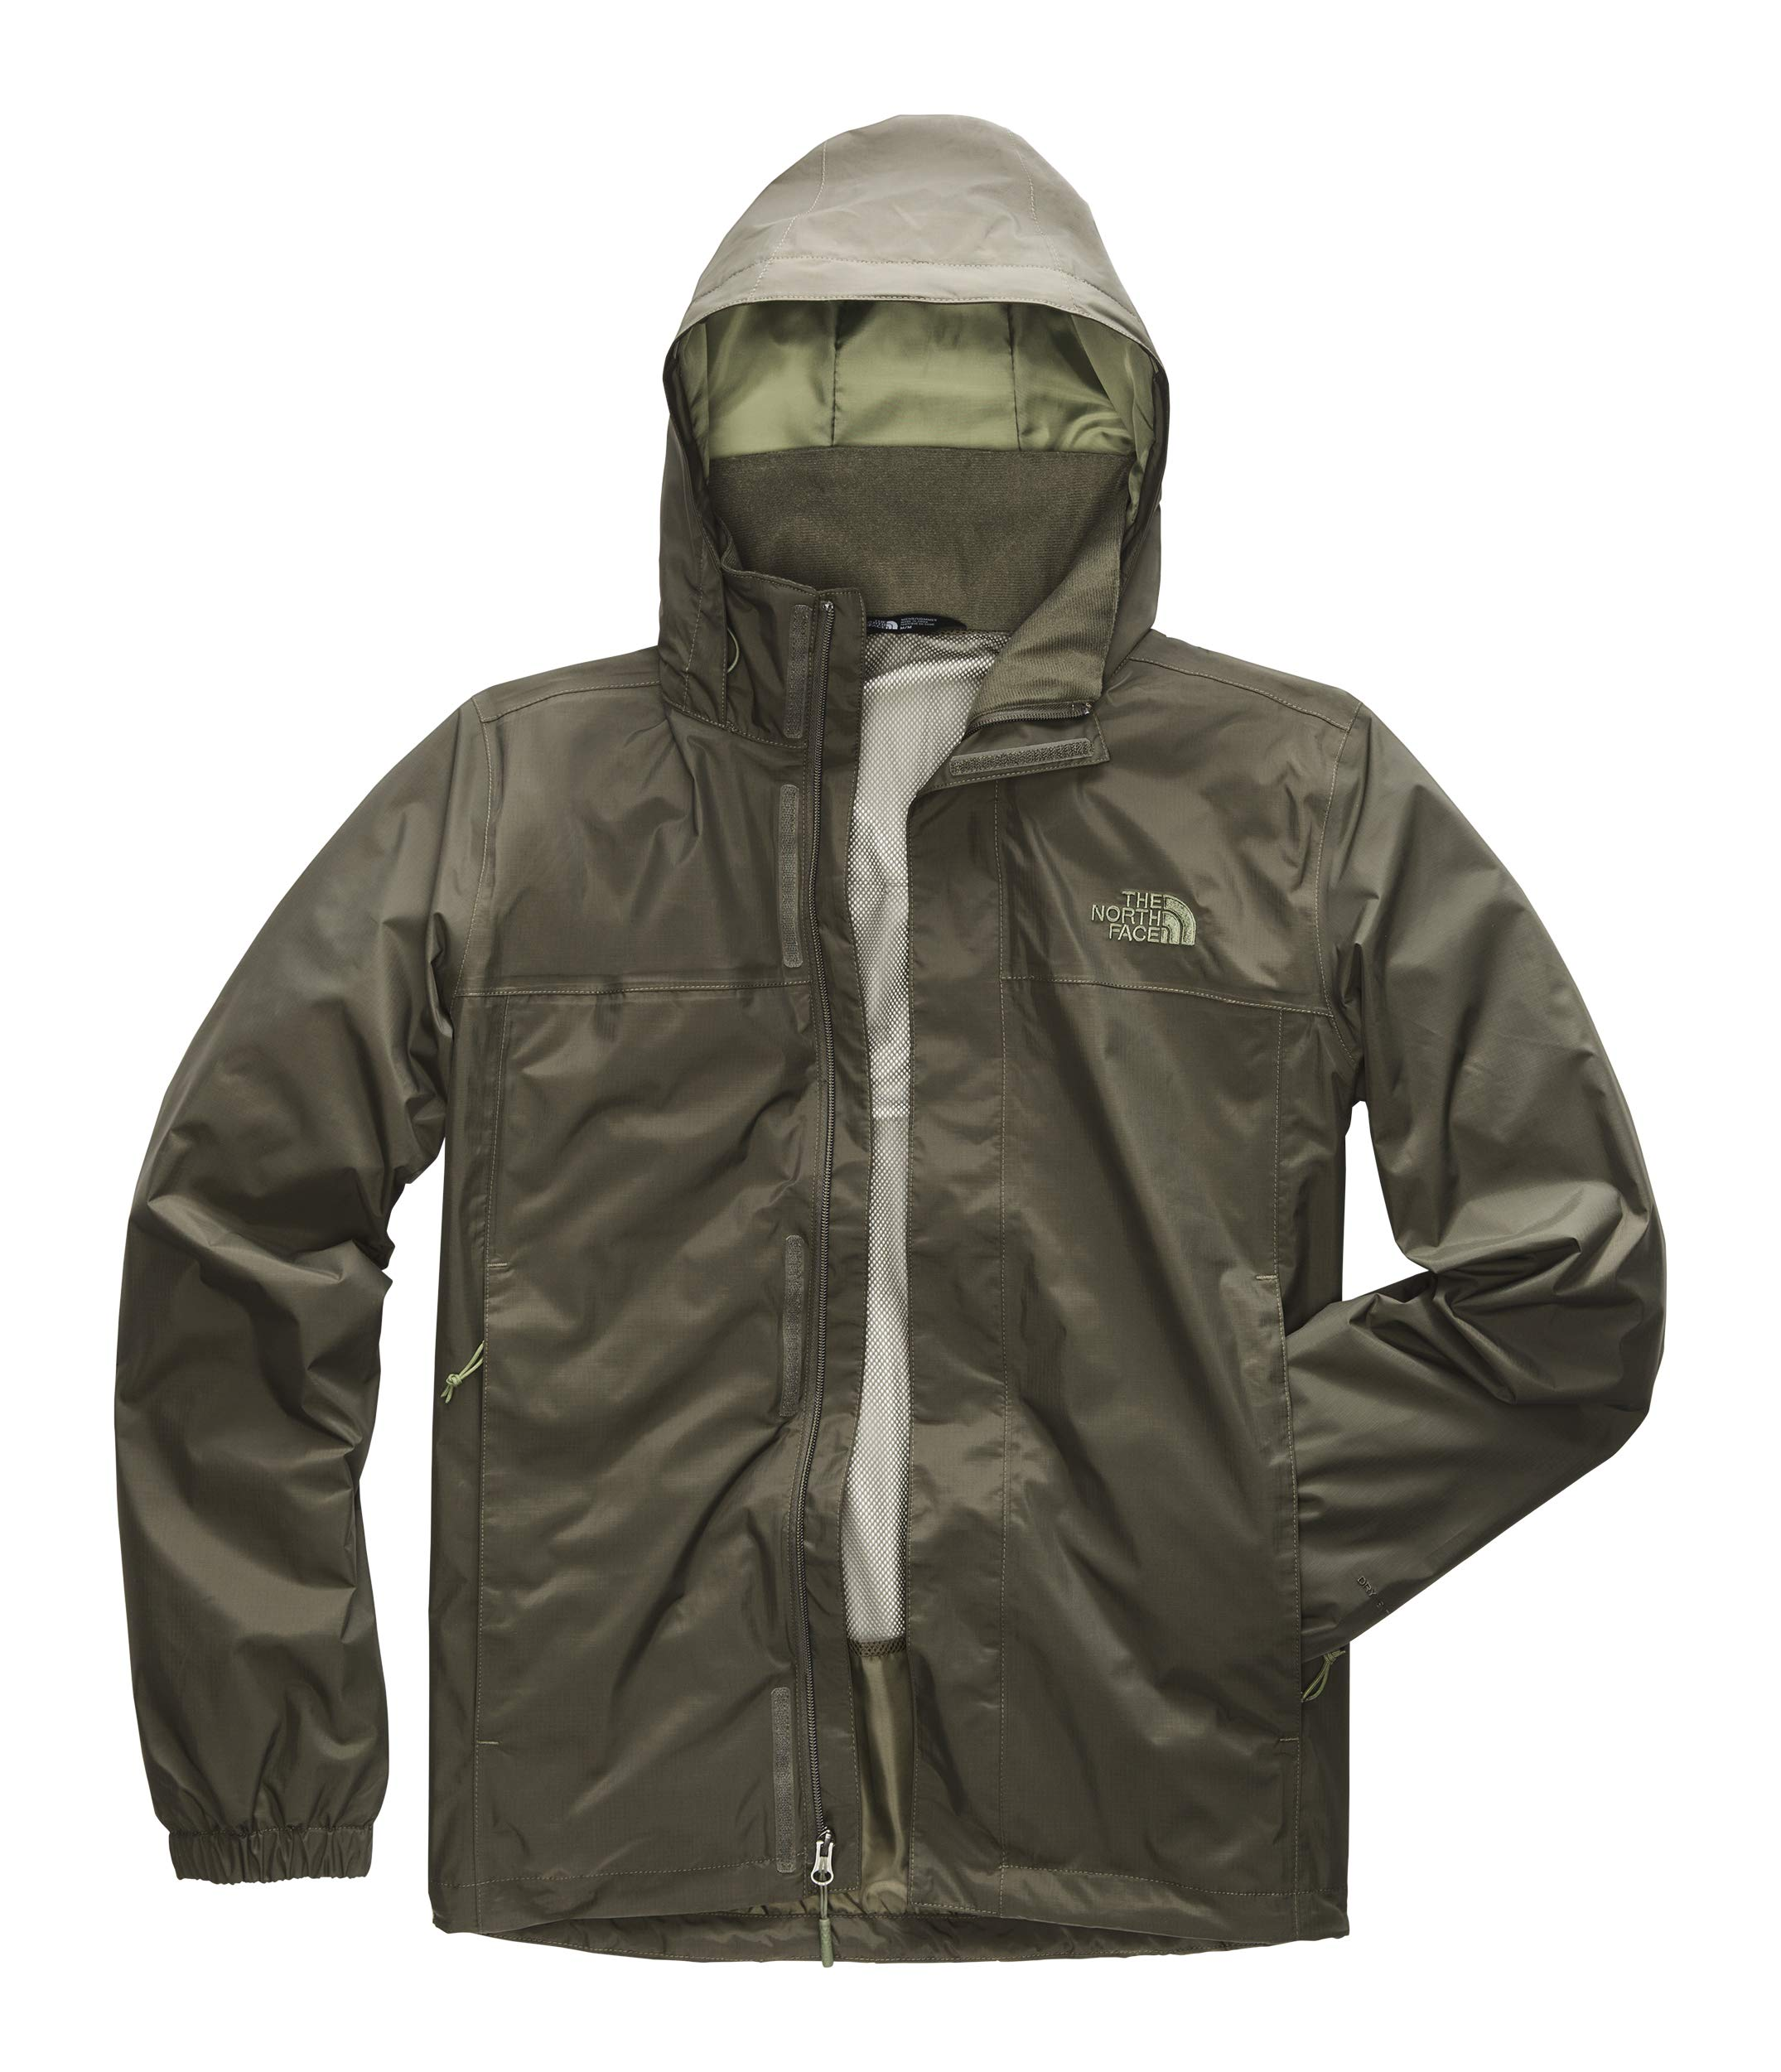 The North Face Men's Resolve 2 Jacket New Taupe Green Small